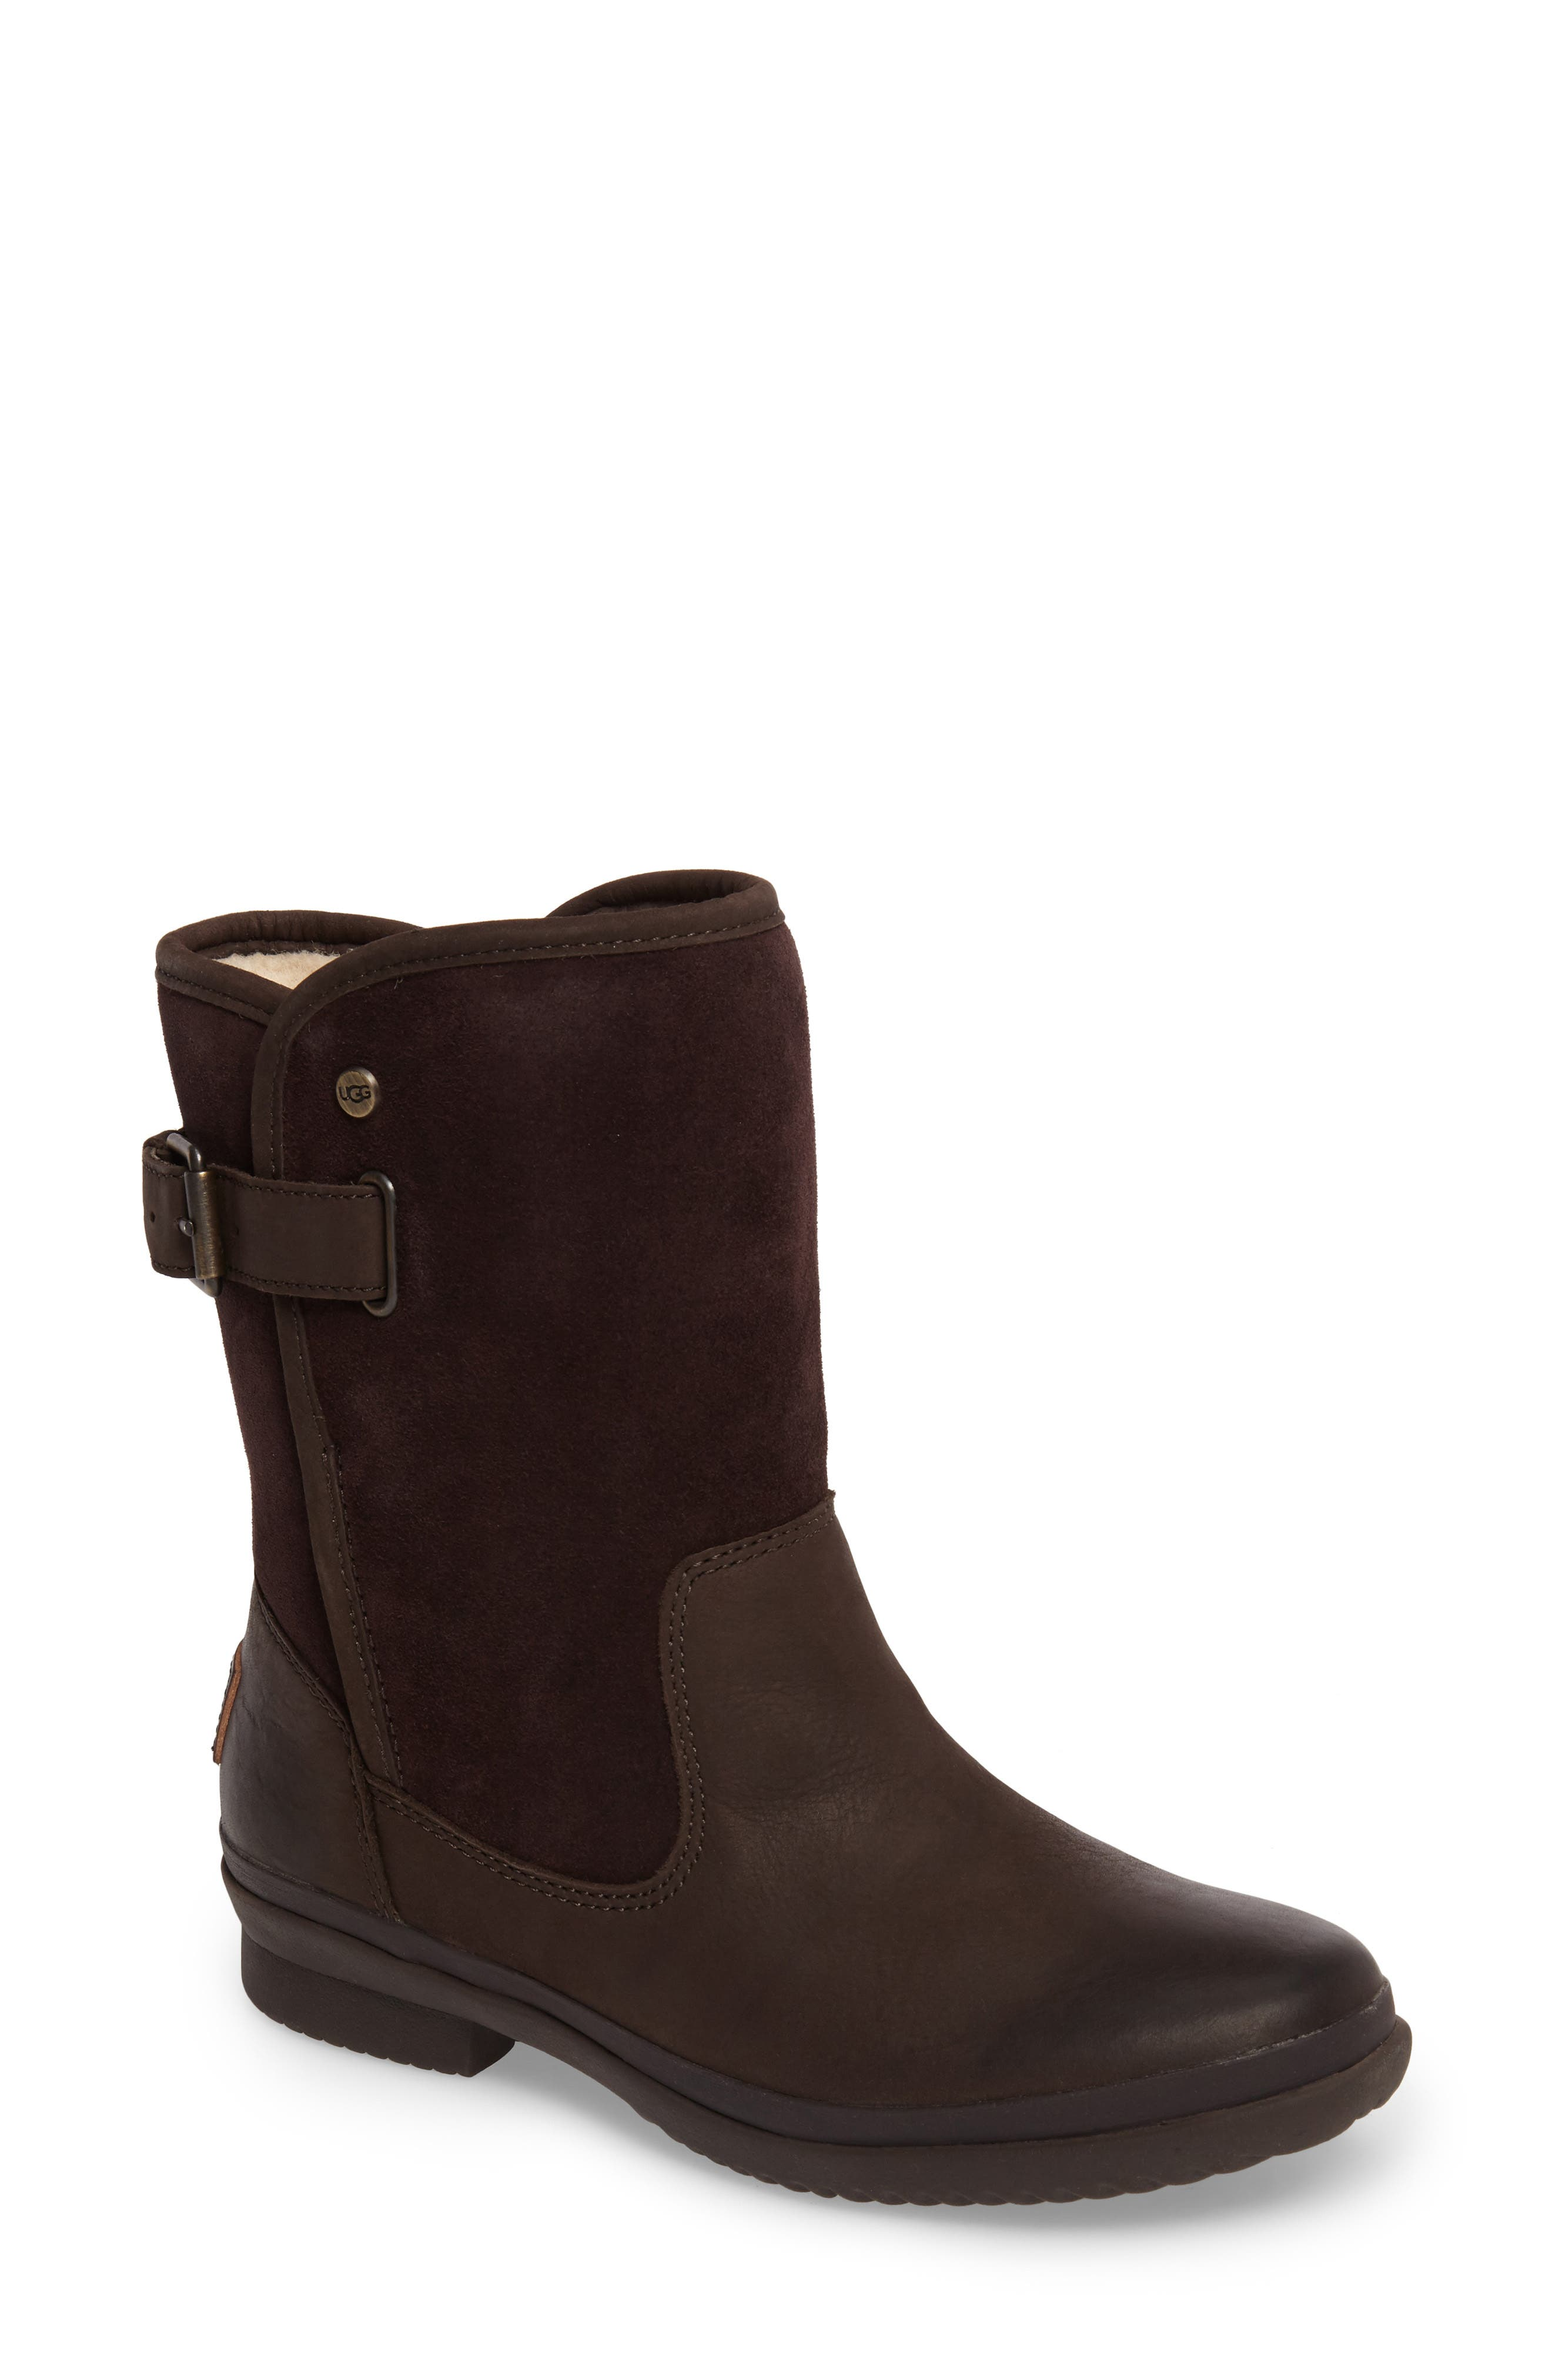 Oren Waterproof Boot,                         Main,                         color, Stout Leather